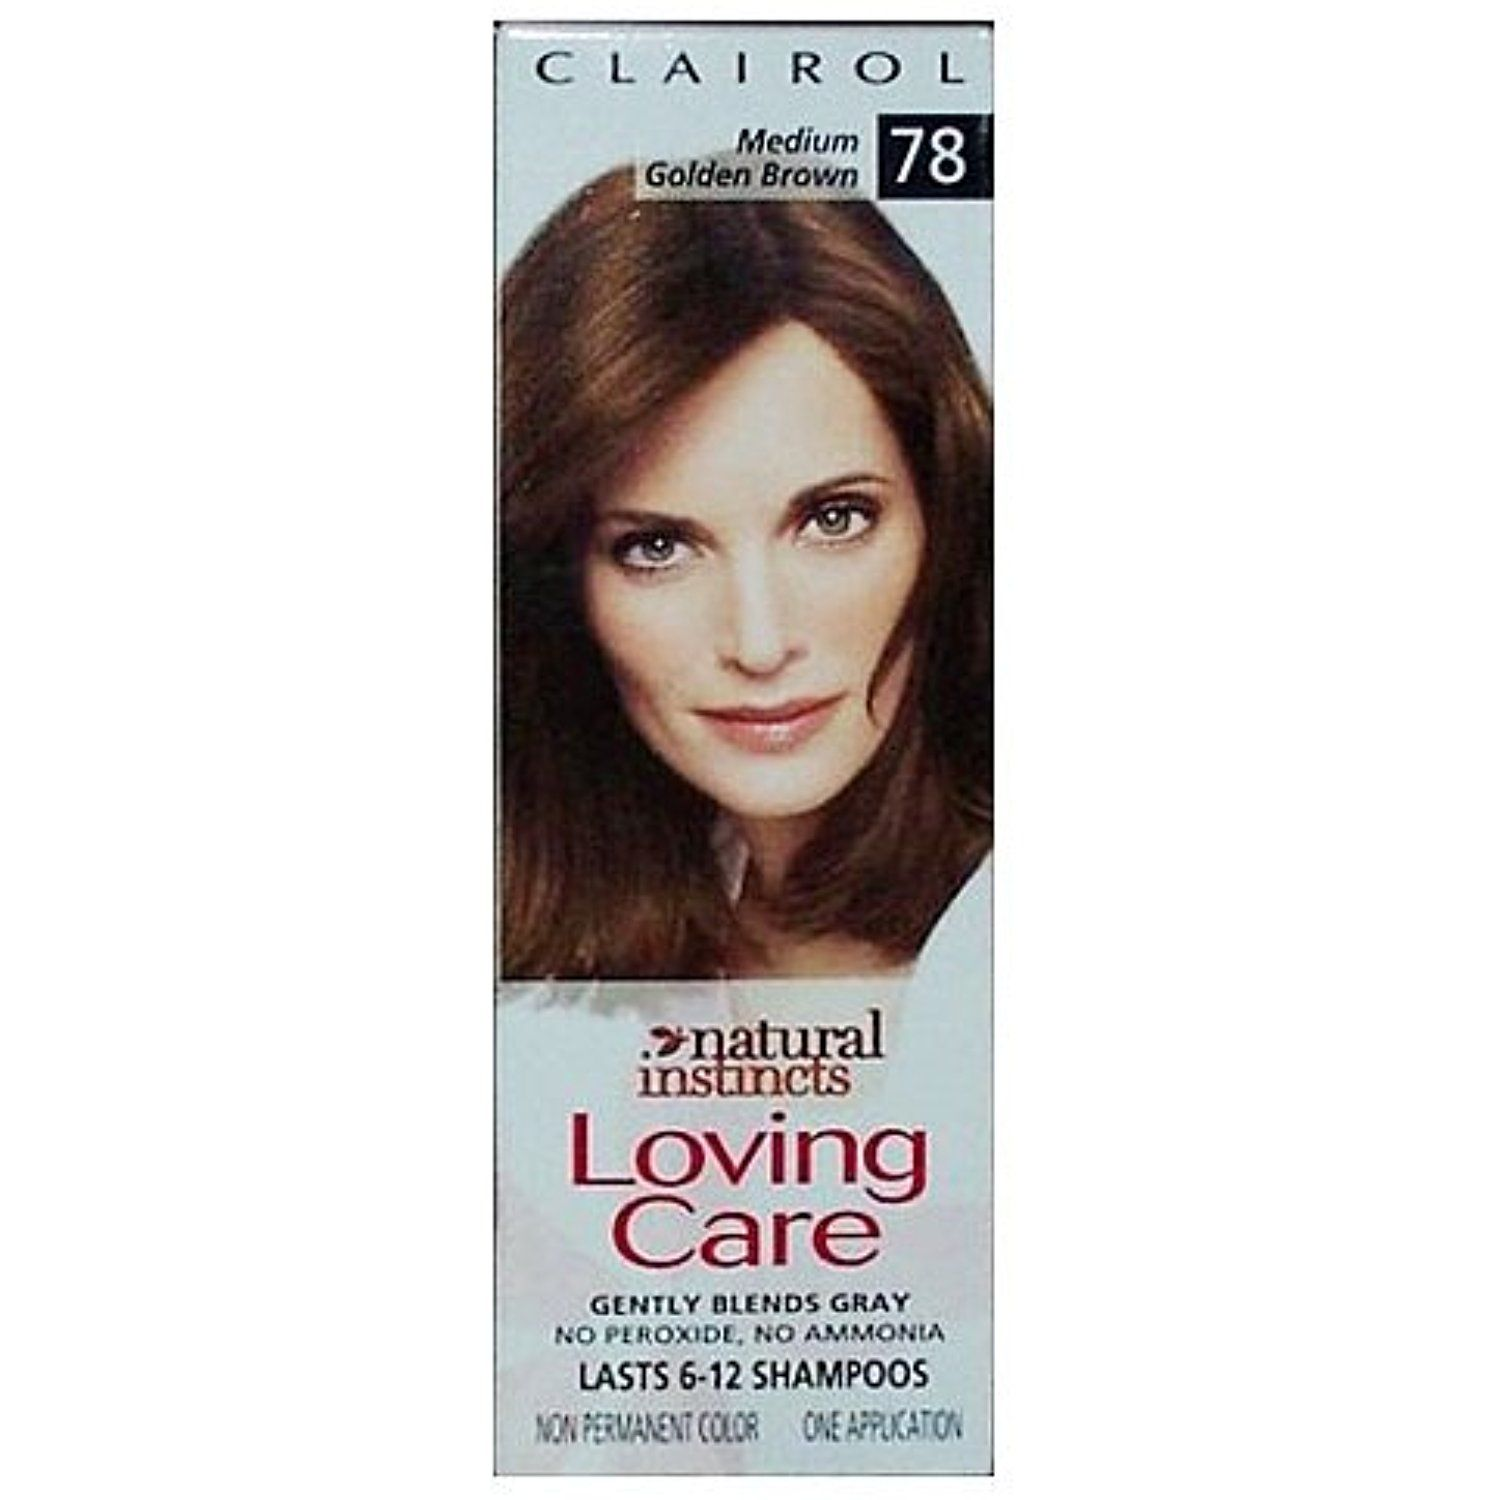 Clairol Loving Care Hair Color Crme Lotion 78 Medium Golden Brown